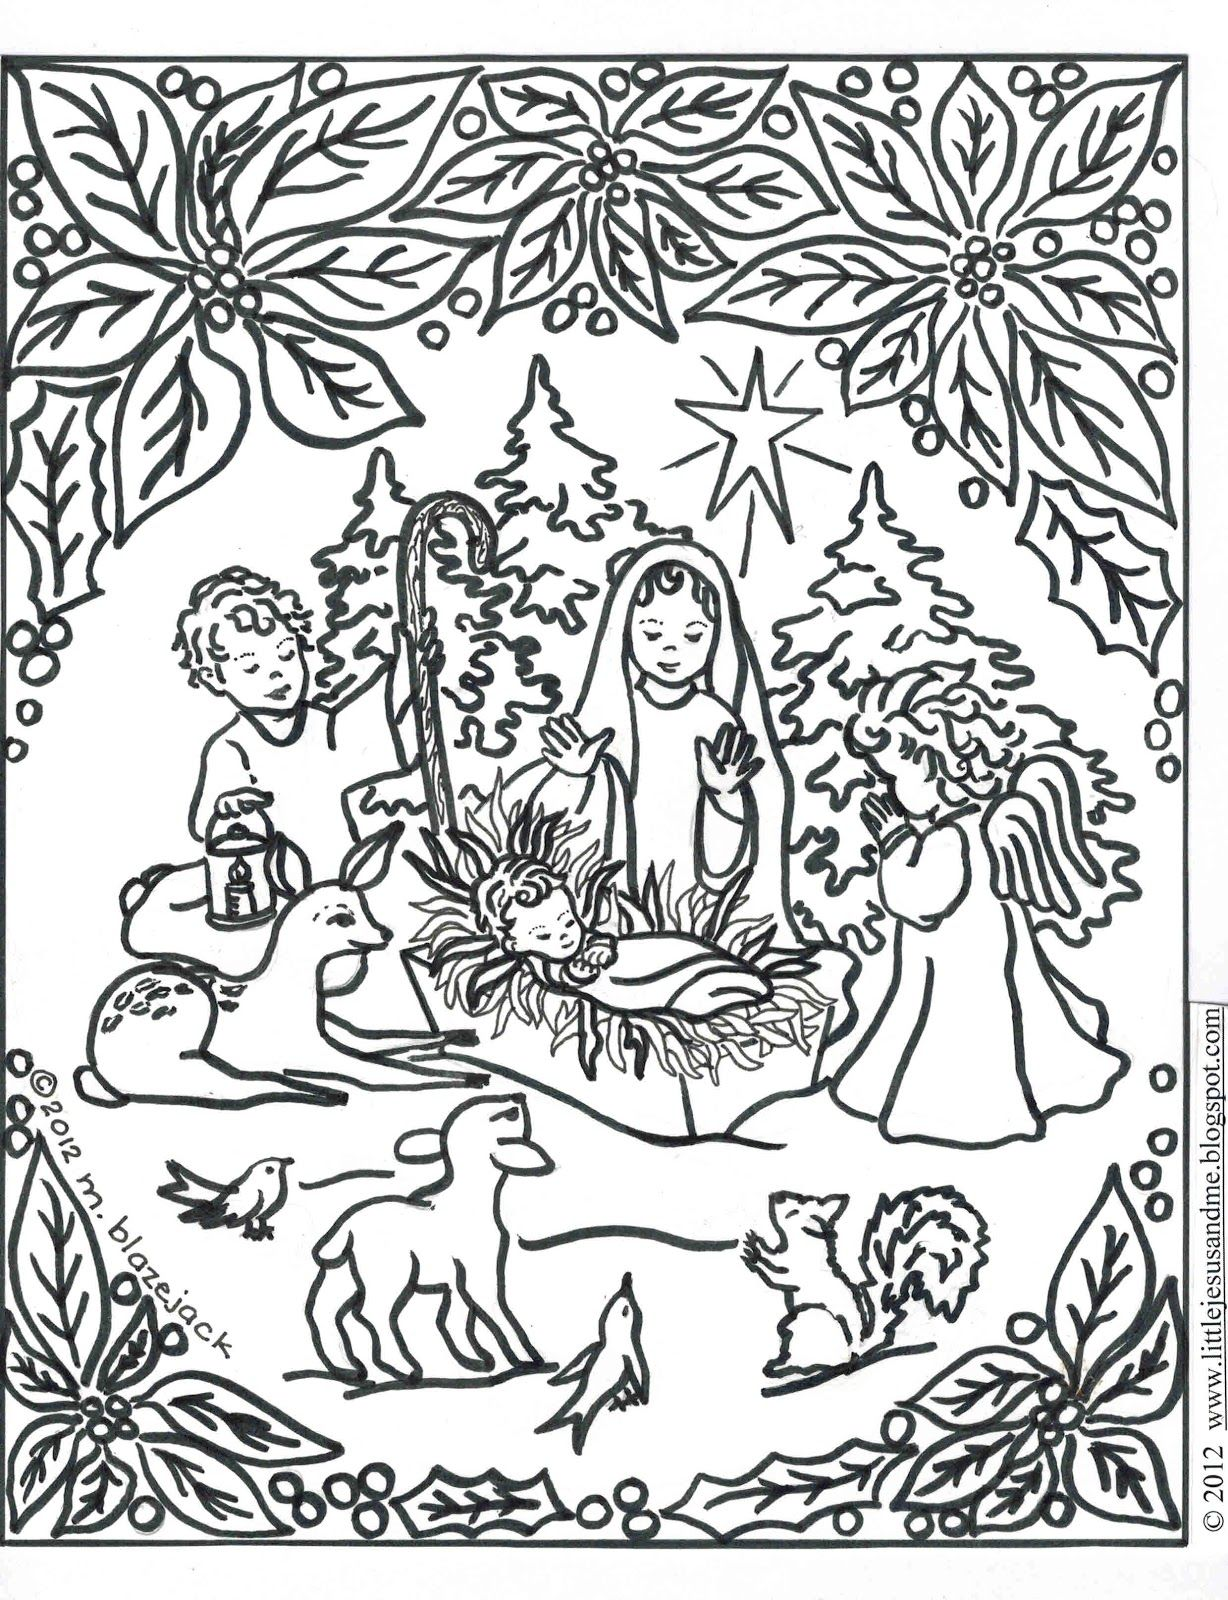 Christian Adult Coloring Pages At Getcolorings